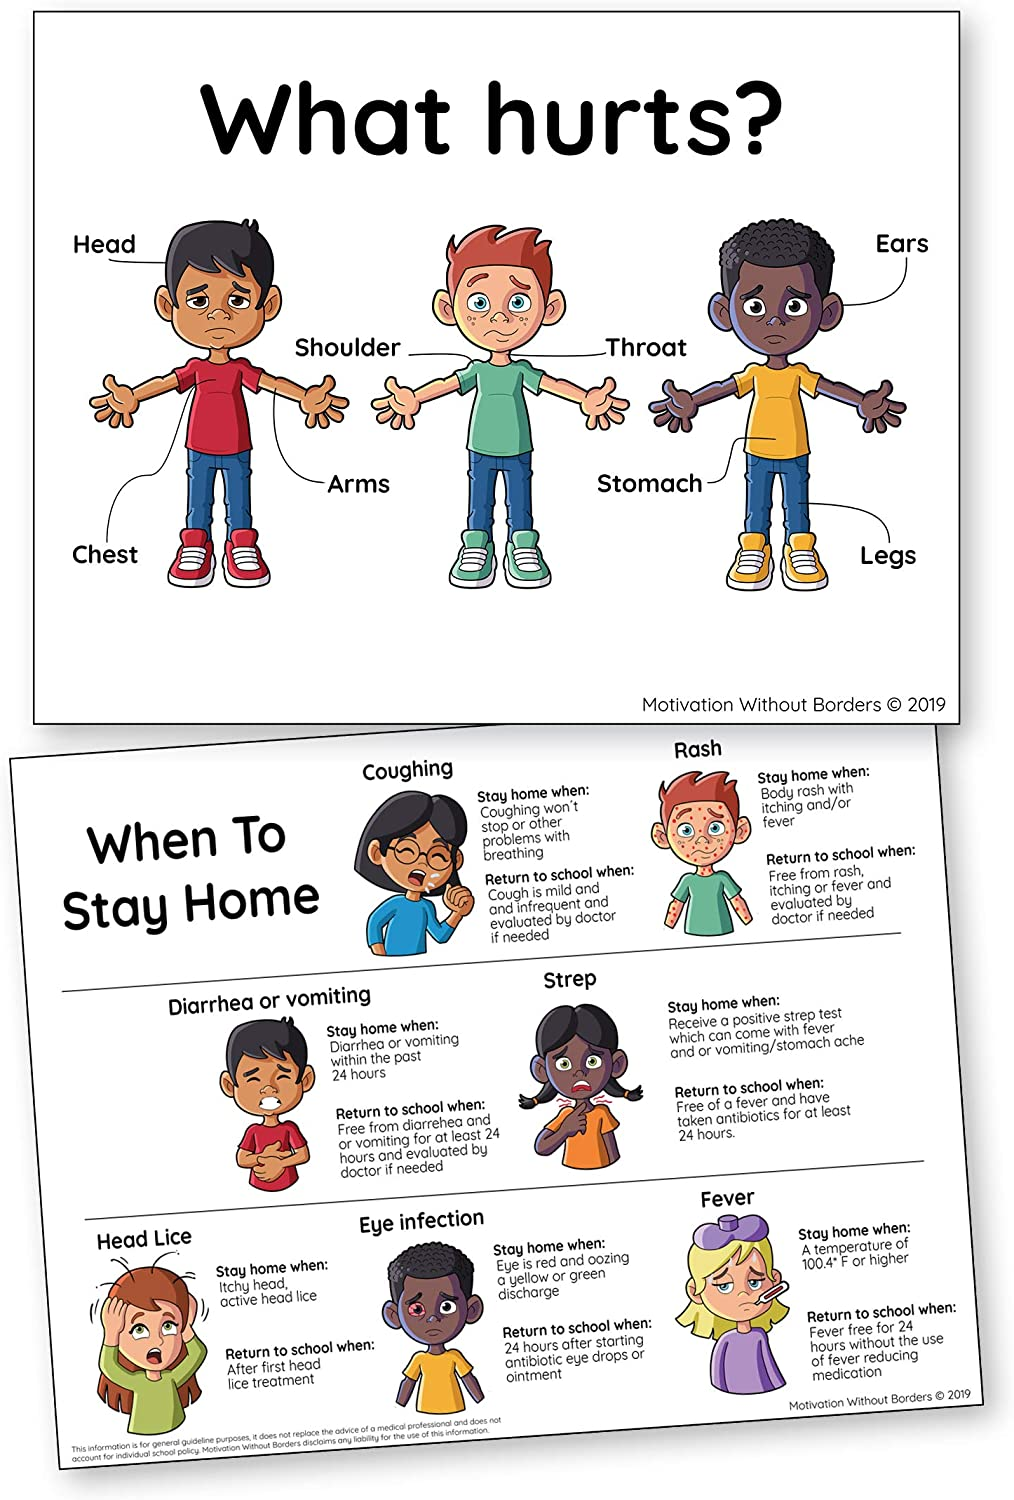 School Nurse Posters Set (17x22 LAMINATED) School Nurse Office Decorations and Nurse Home Decor (2 Posters Included)